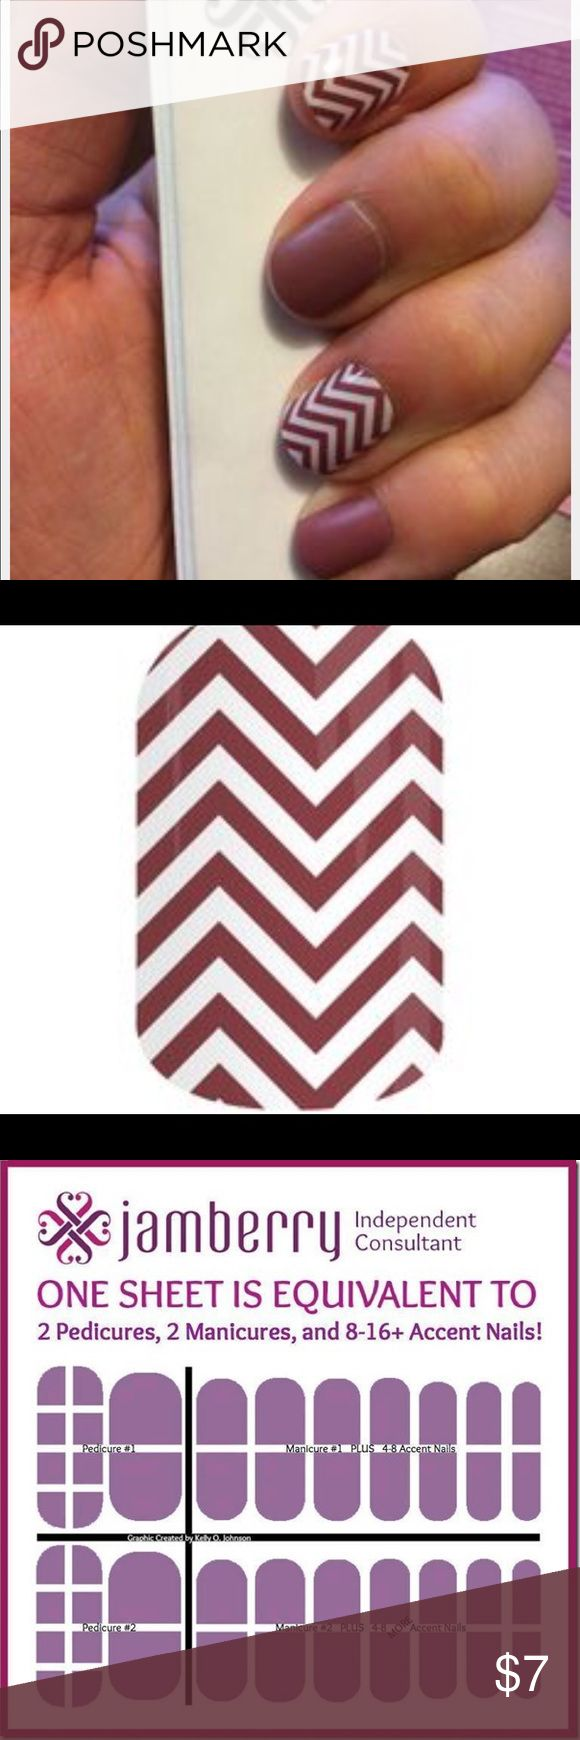 JAMBERRY RETIRE WRAP: MARSALA CHEVERON RETIRED JAMBERRY: MARSALA CHEVRON FULL SHEET GIVES YOU---  2 pedicures, 2 manicures and 8-16+ accent nails!     You may choose full or half sheet- if you want half sheet just select one of you want the full sheet choose our nail wraps are:  • Non-toxic  • 5-Free (Dibutyl Phthalate, Toluene, Formaldehyde, Formaldehyde Resin, or Camphor) • Easy to apply at-home • Requires ZERO dry time • Durable for long-lasting wear without chipping, peeling or fading…